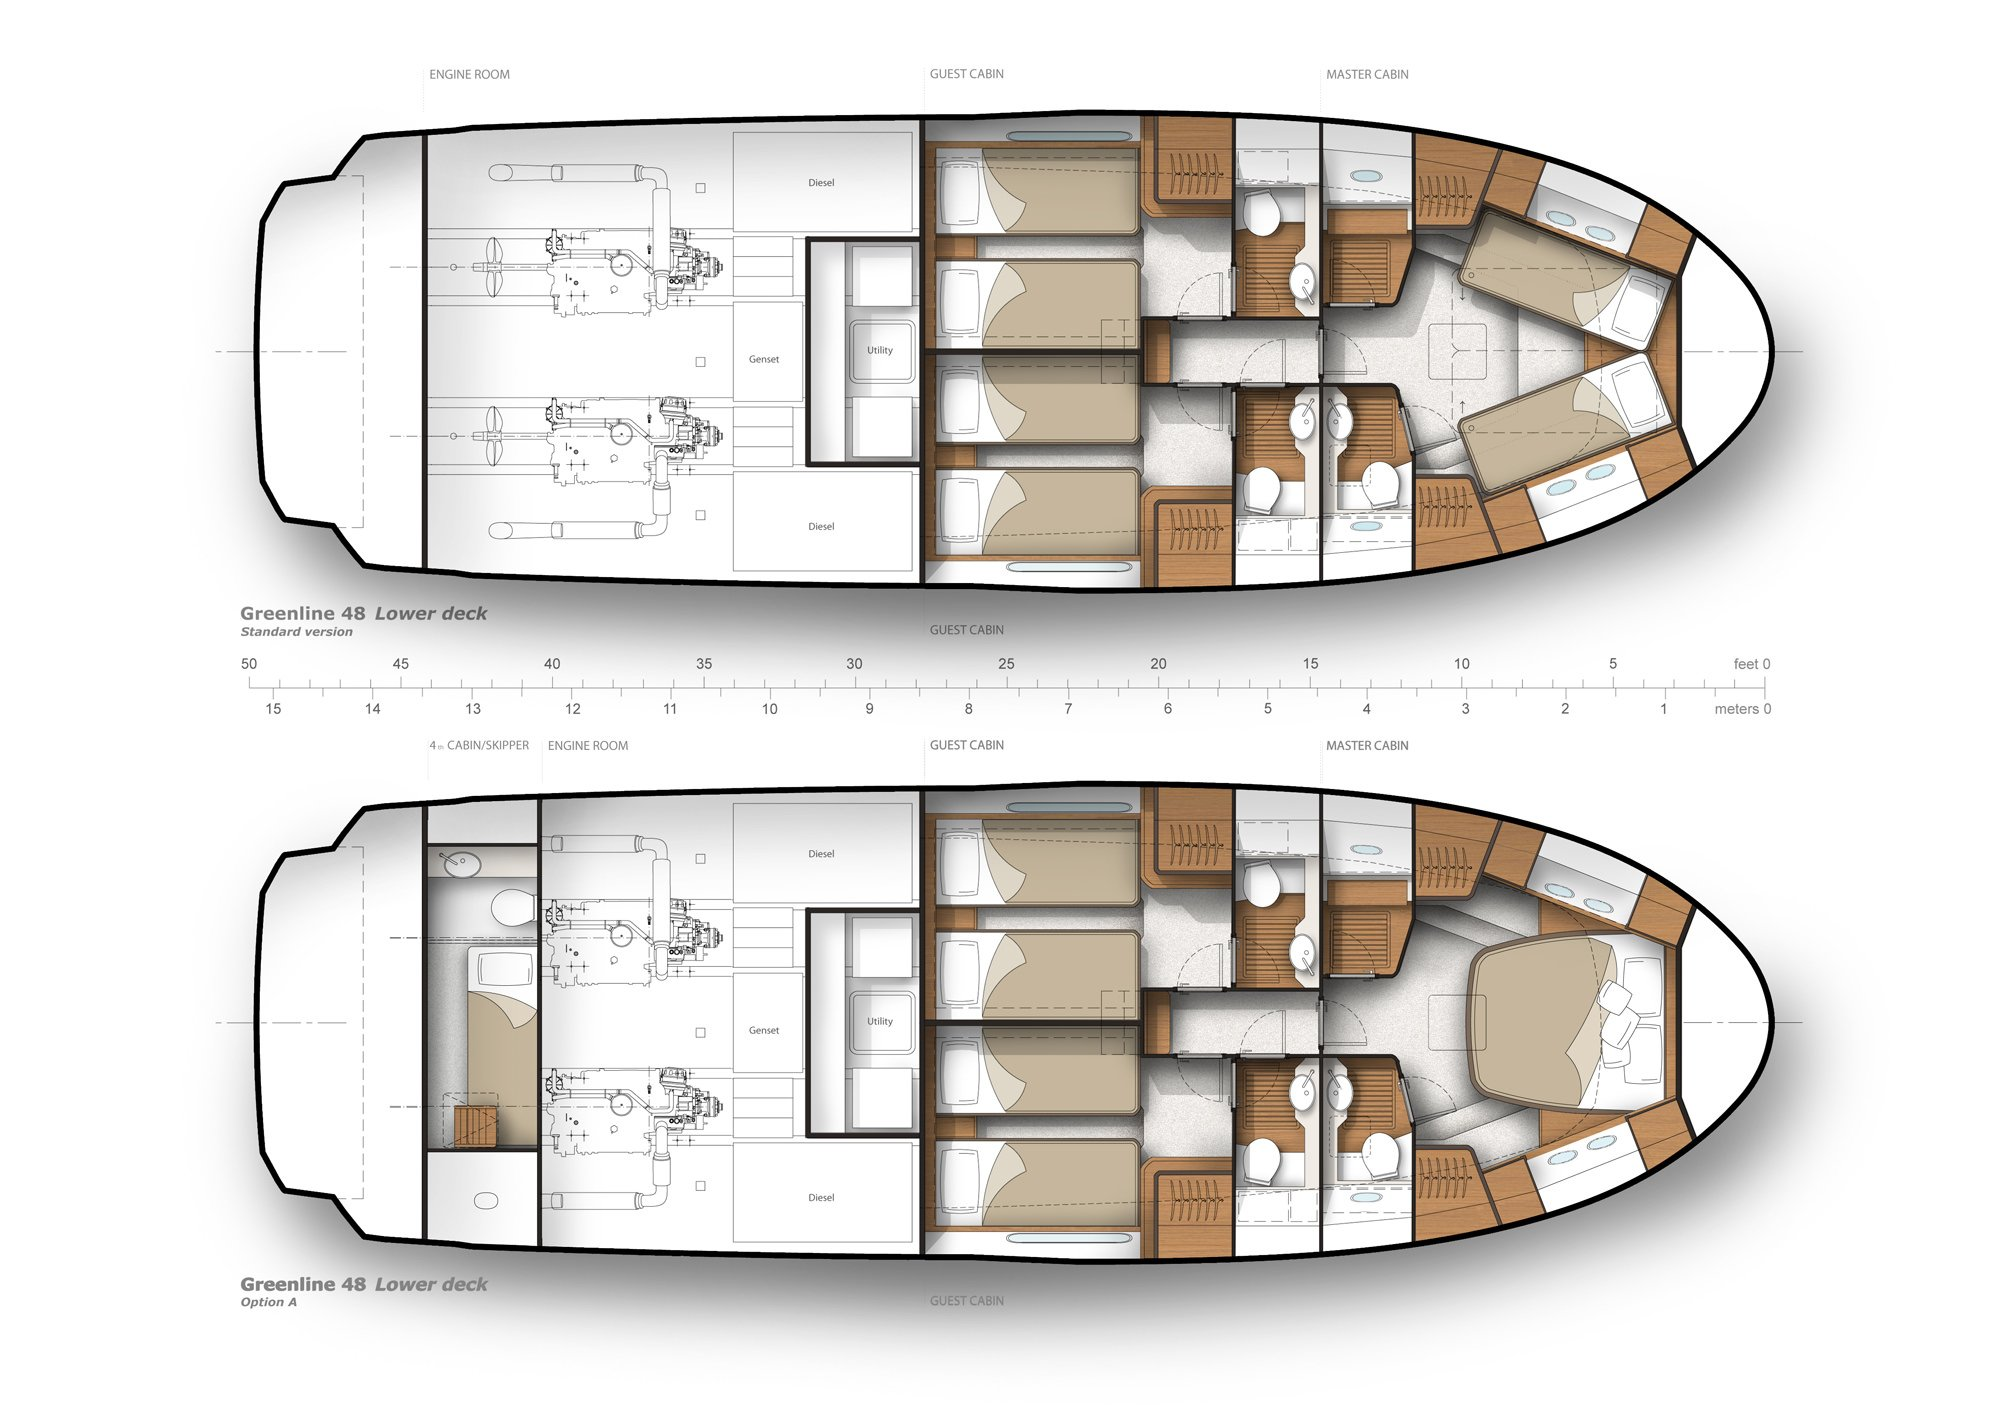 You see a graph showing the Greenline 48 Fly twice from a bird's-eye view. In each case, a cross section is shown to show different Options of the division regarding to the interior on the Lower Deck Level of the Boat.